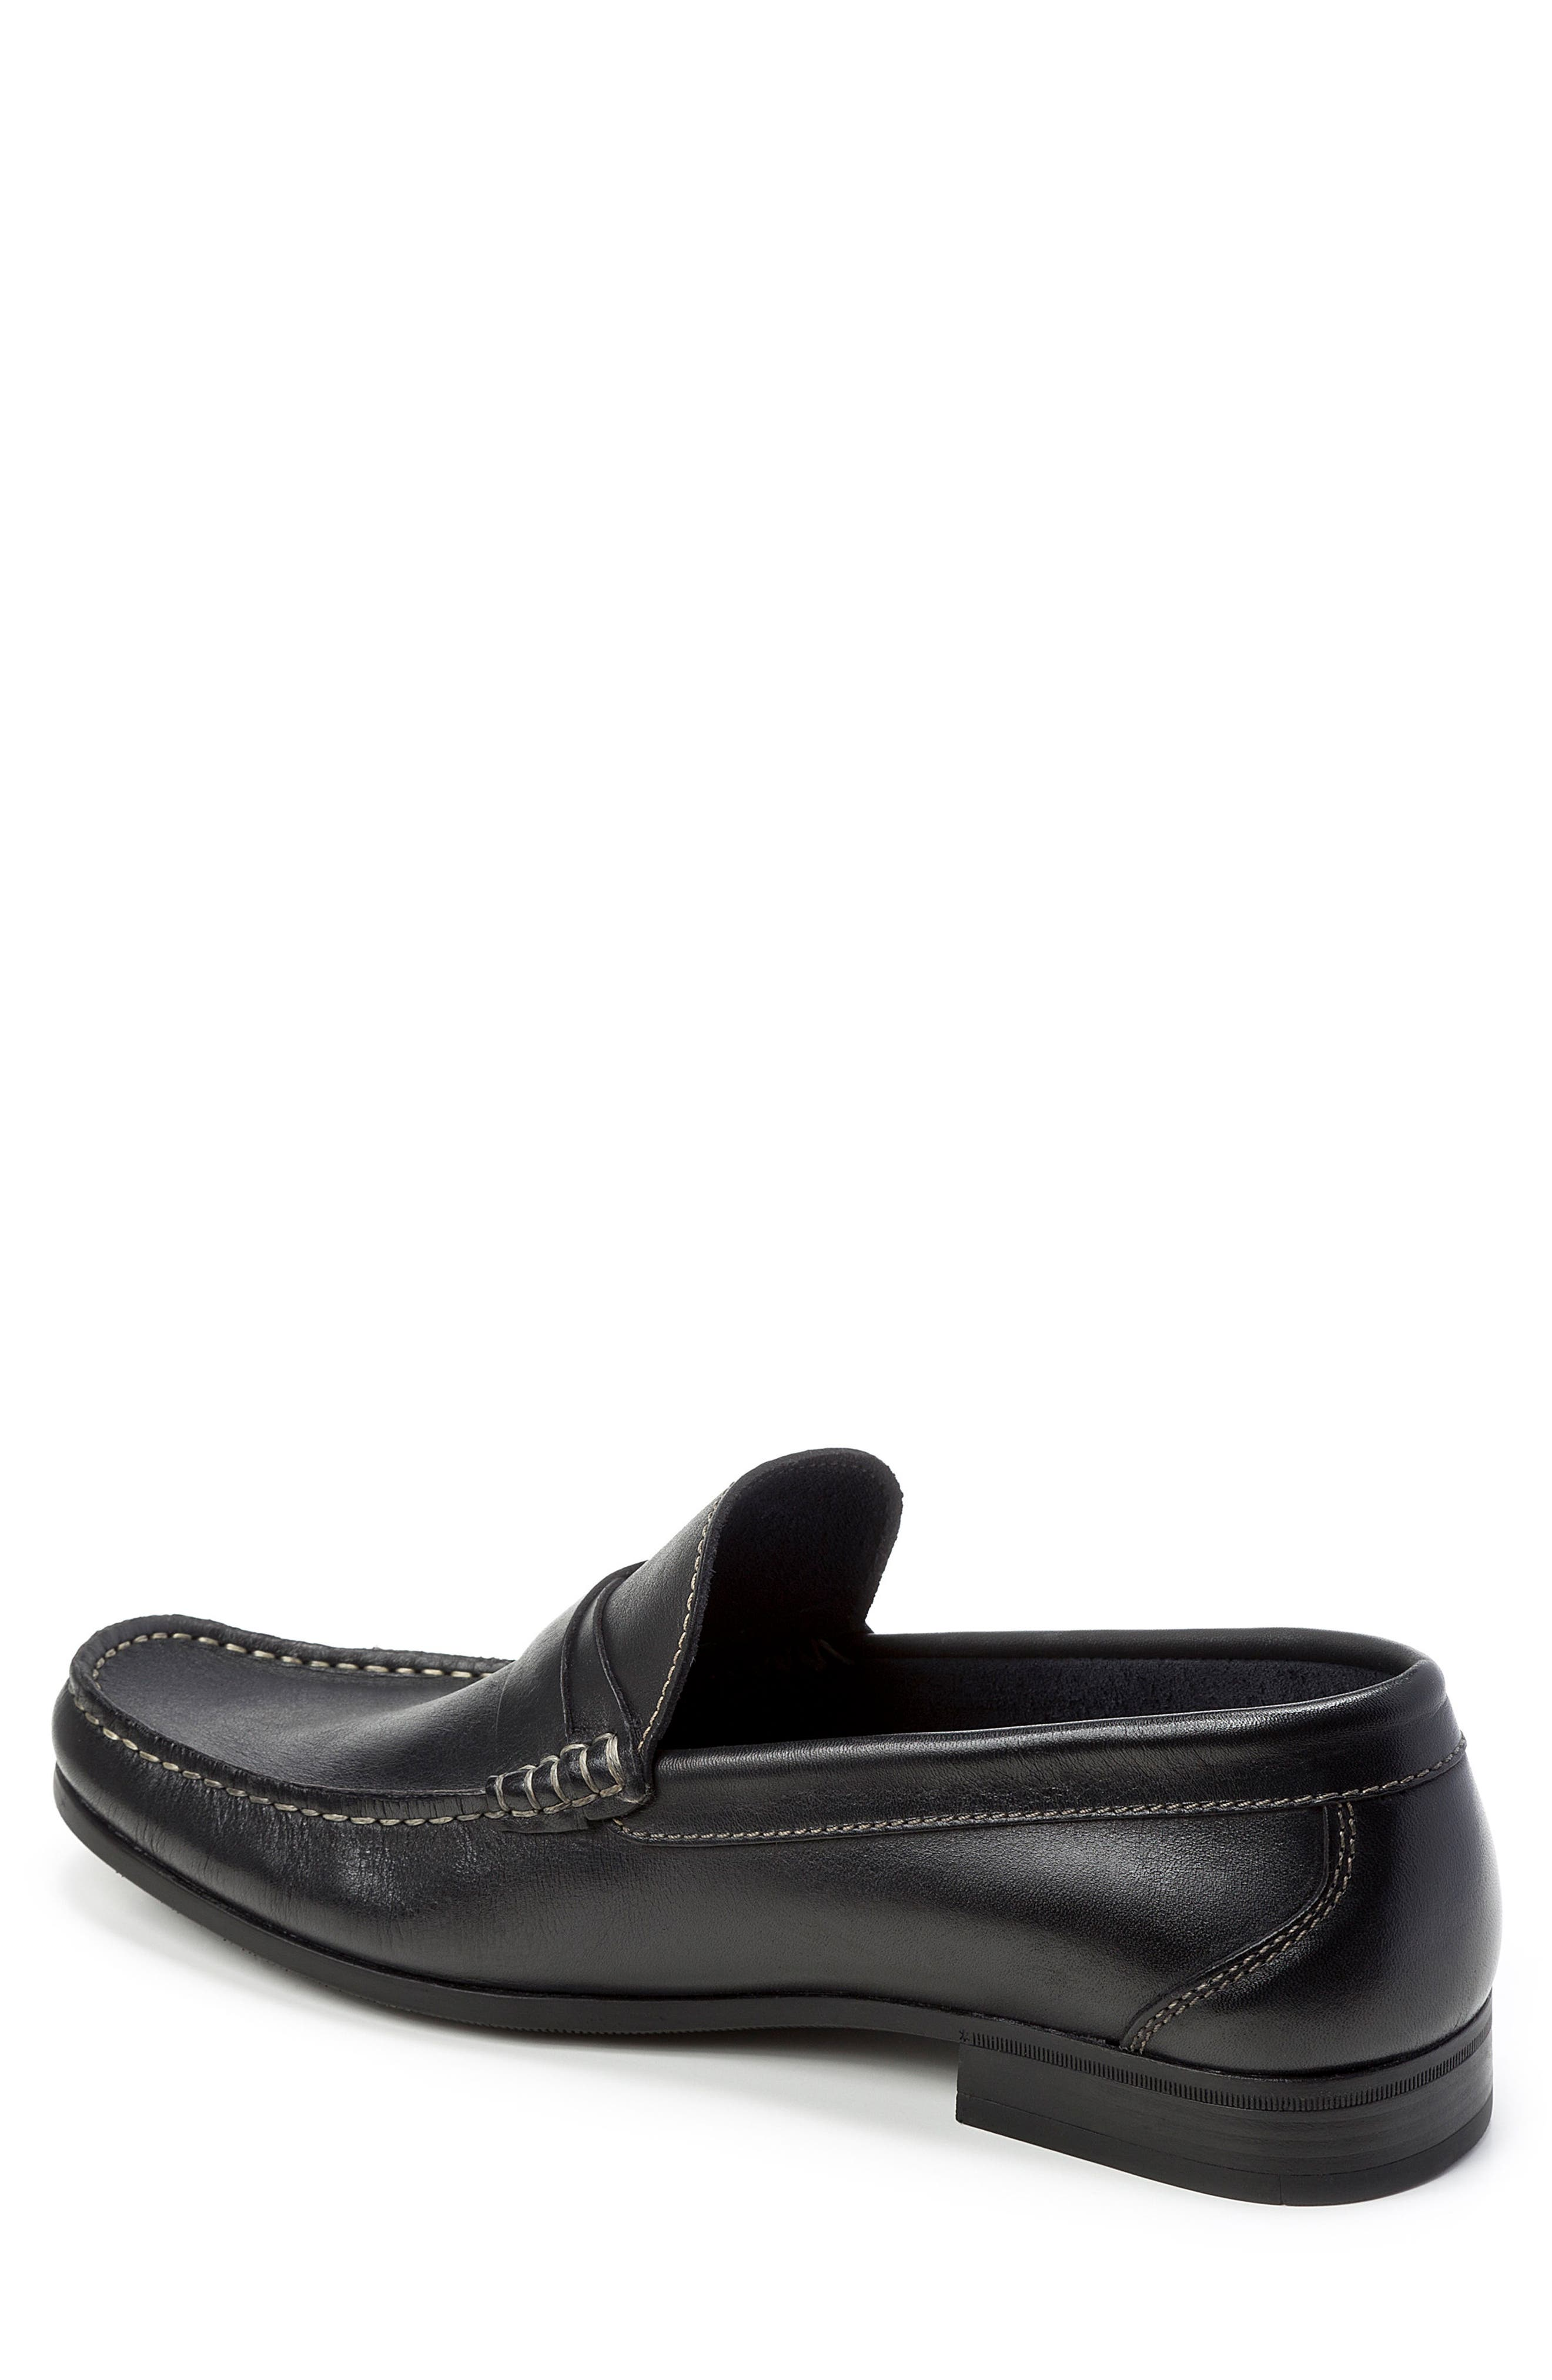 Abruzo Cross Strap Loafer,                             Alternate thumbnail 2, color,                             Black